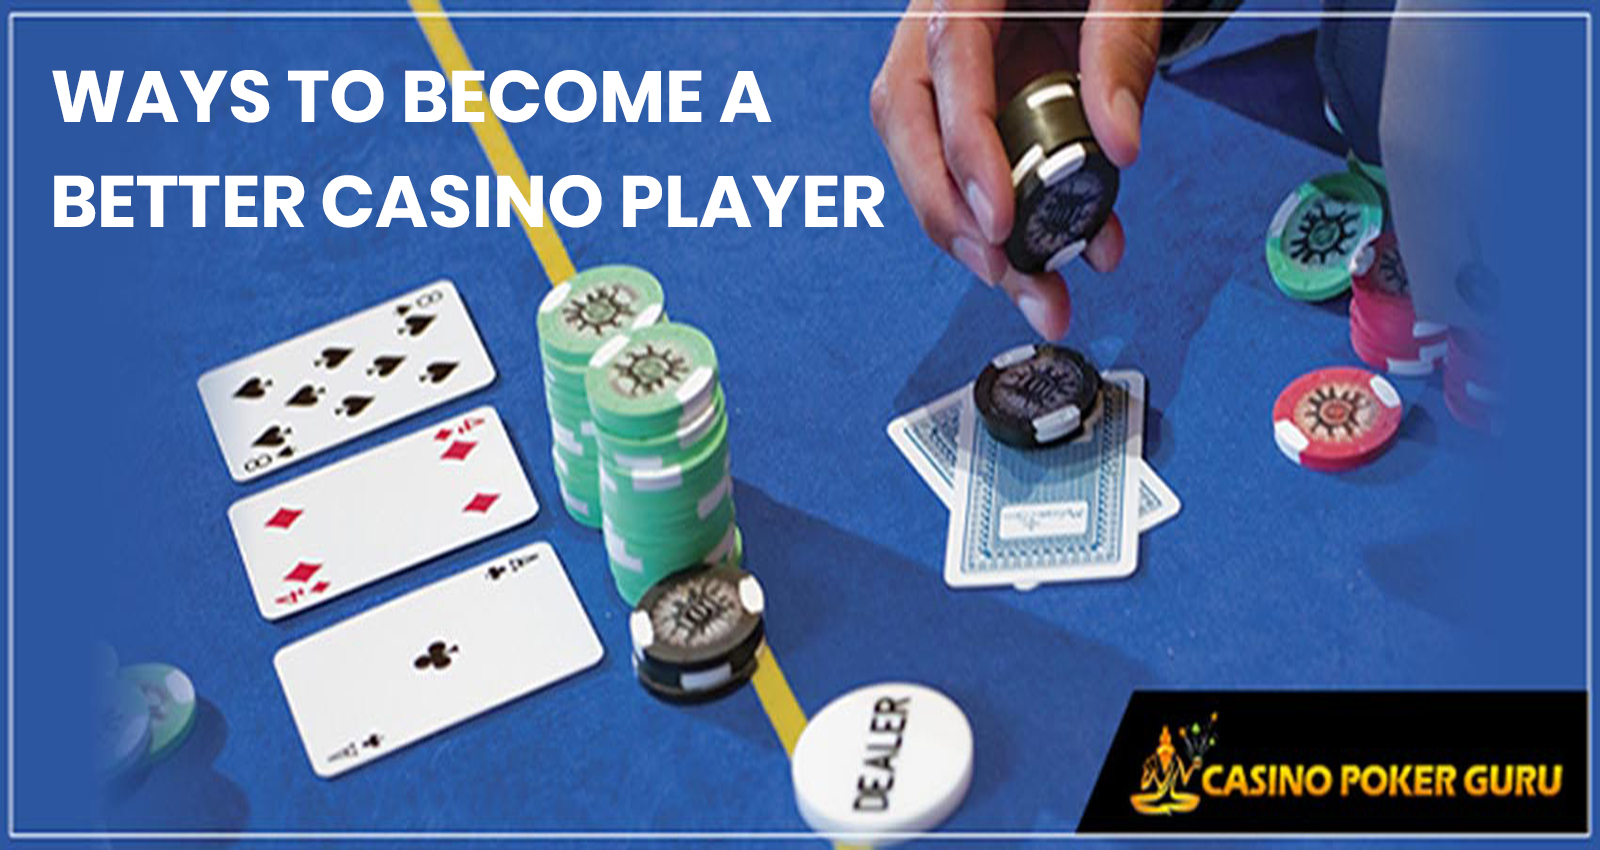 Ways to Become a Better Casino Player